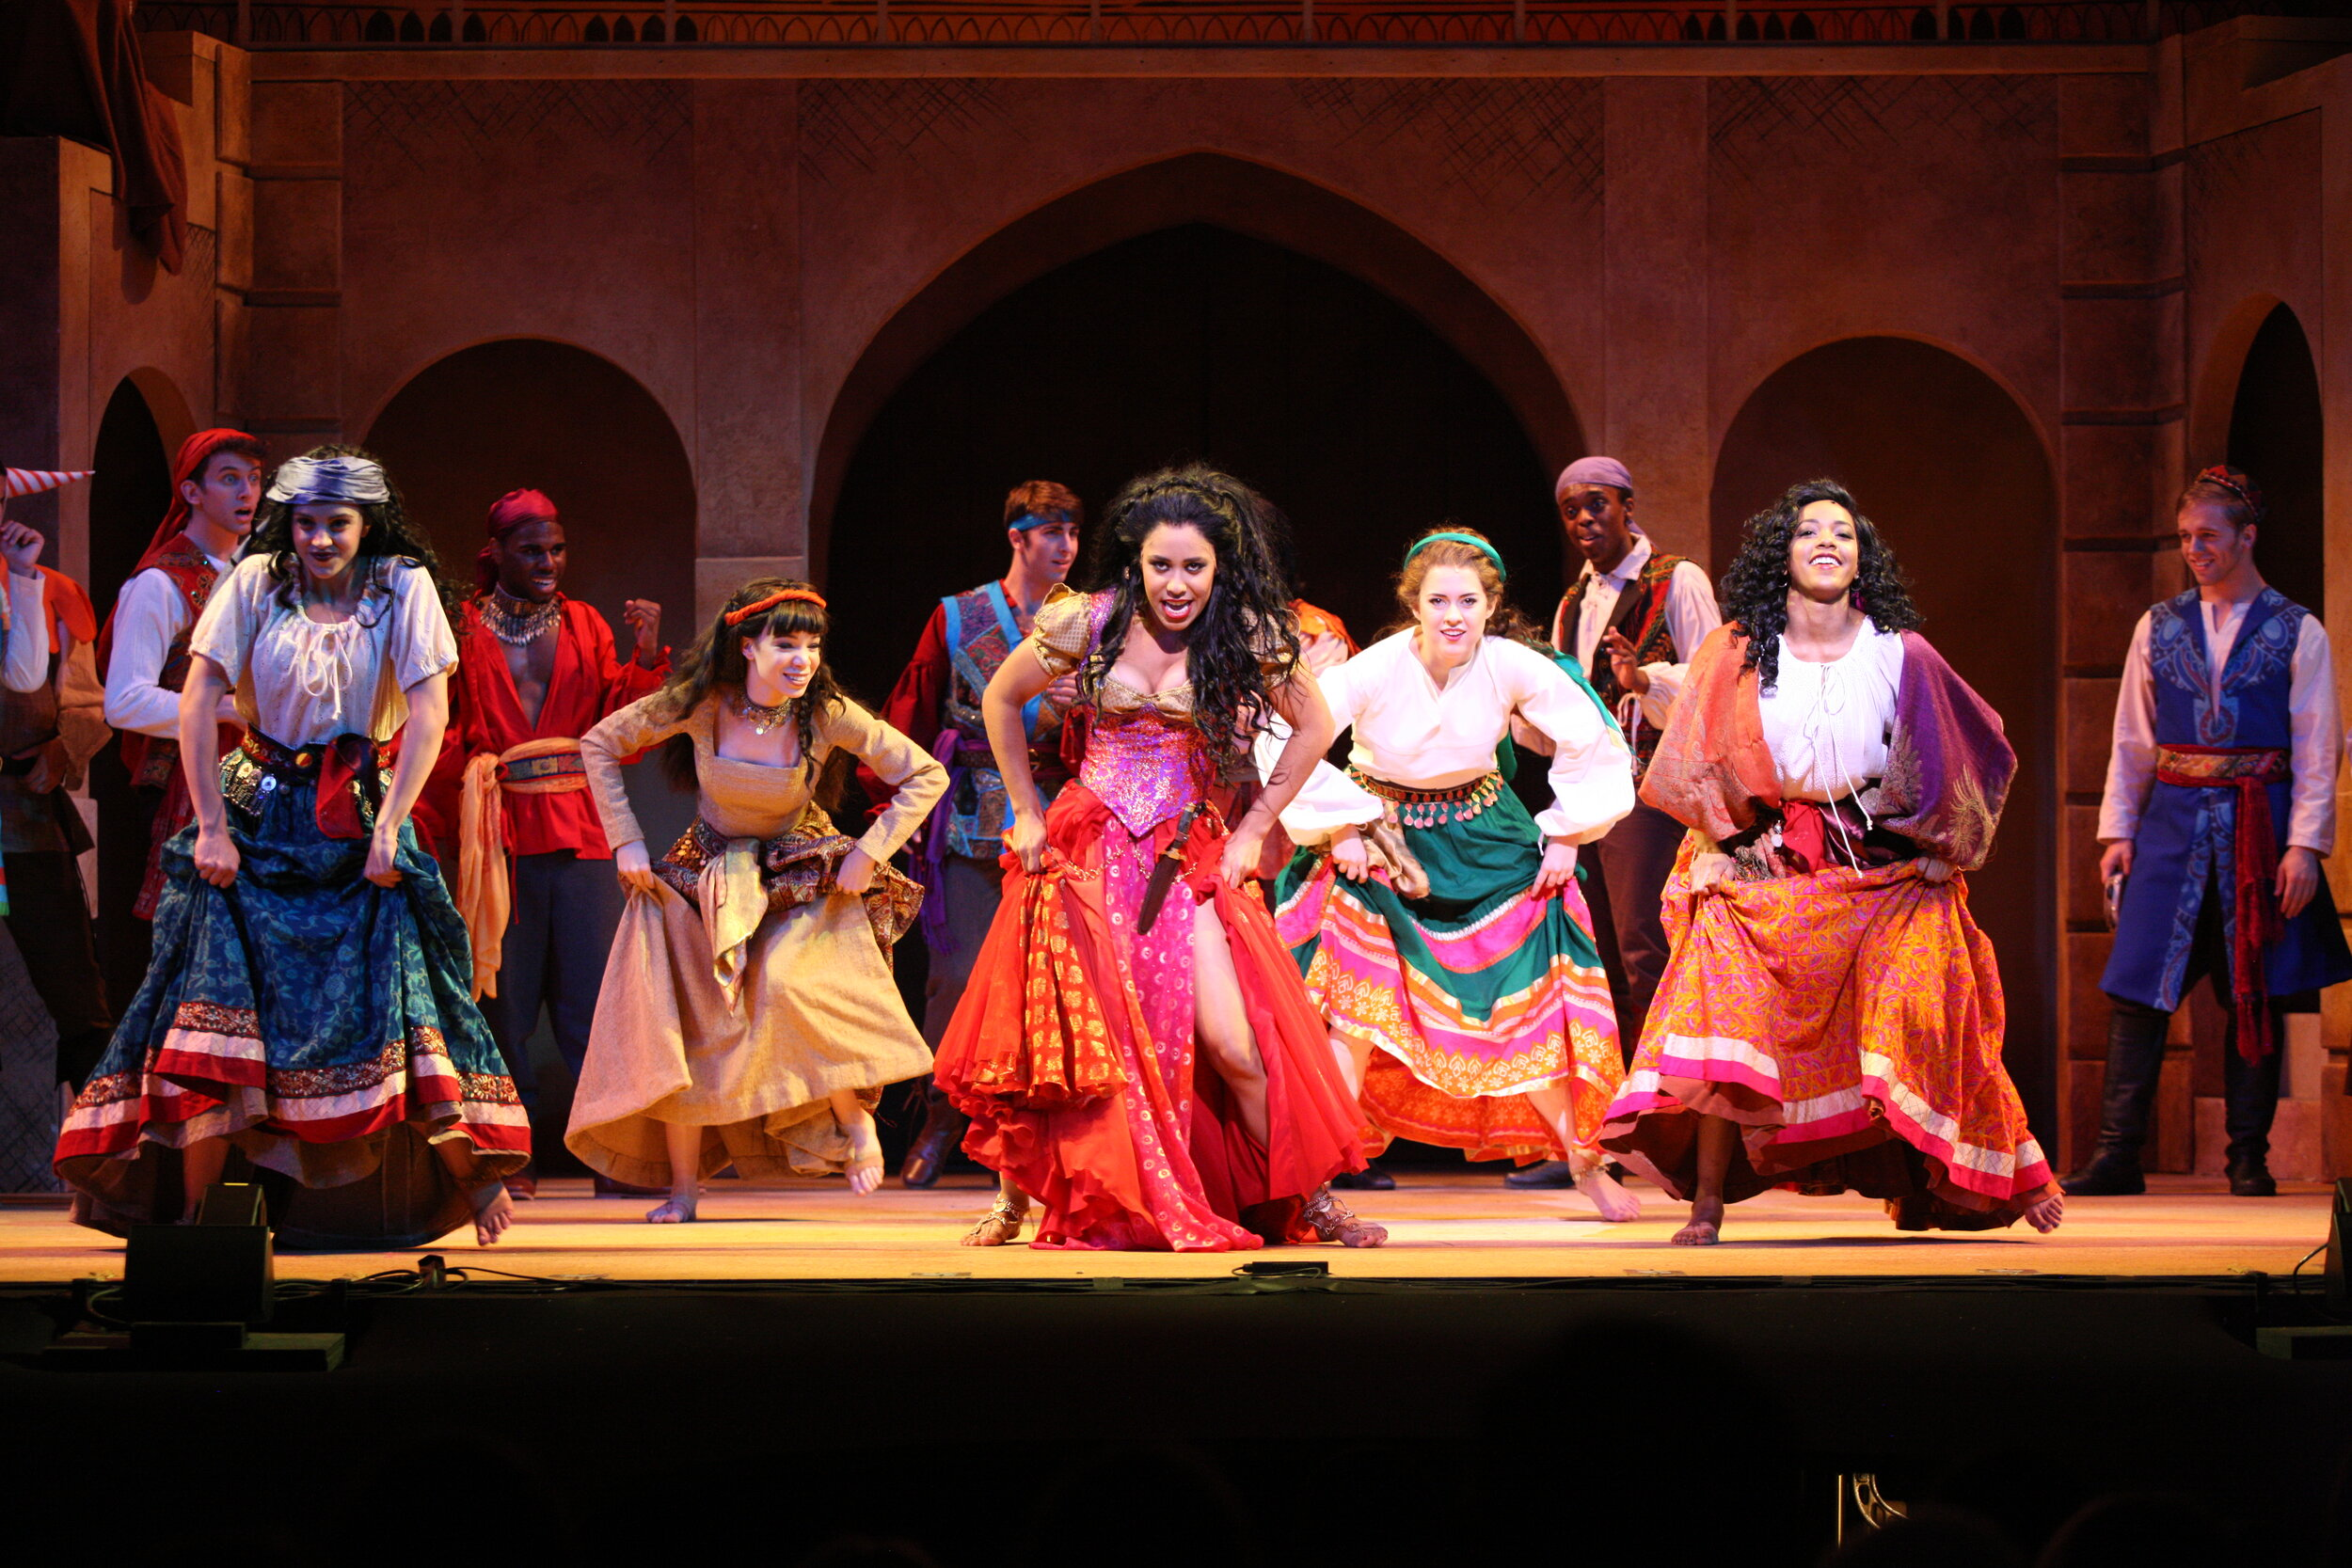 Gypsies Headwear- Hunchback of Notre Dame- Music Theatre Wichita 2017  Costume Design by George T Mitchell. All designs by the seasonal staff of MTW. Photos courtesy of Christopher Clark and John Fritchman.